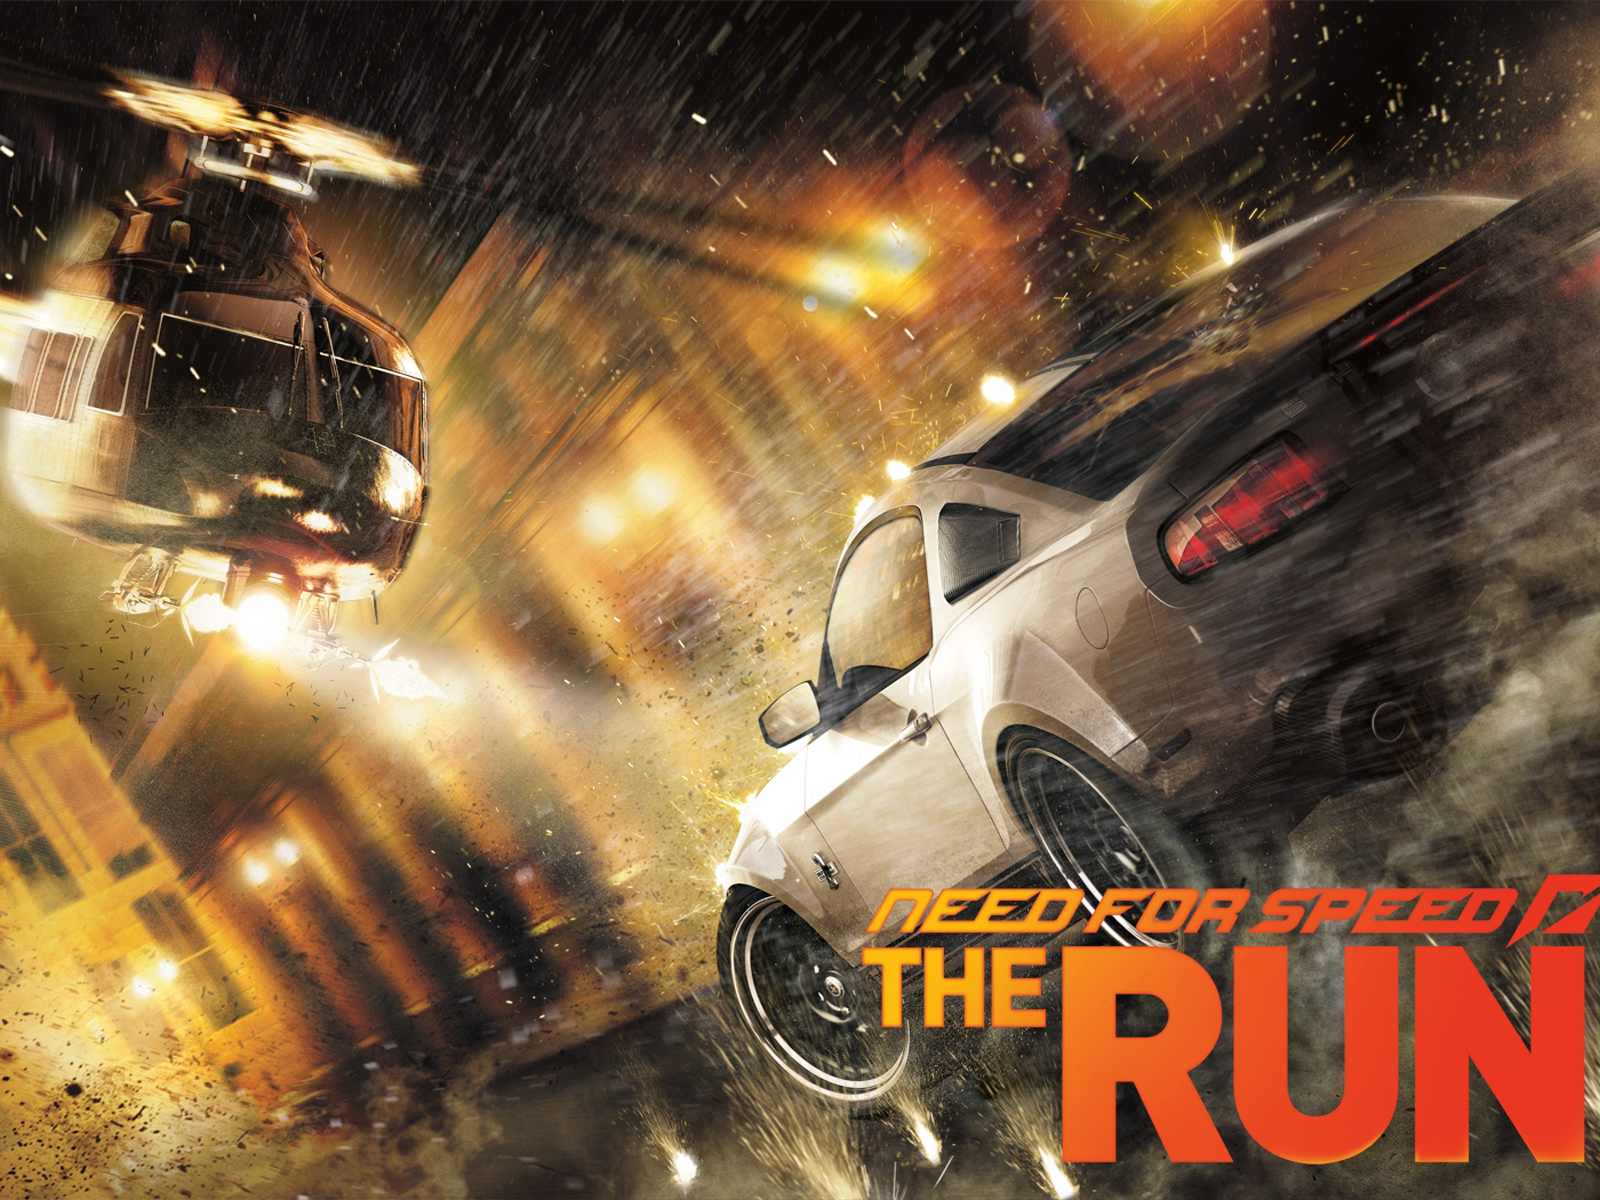 2011 NFS The Run 360.25 Kb